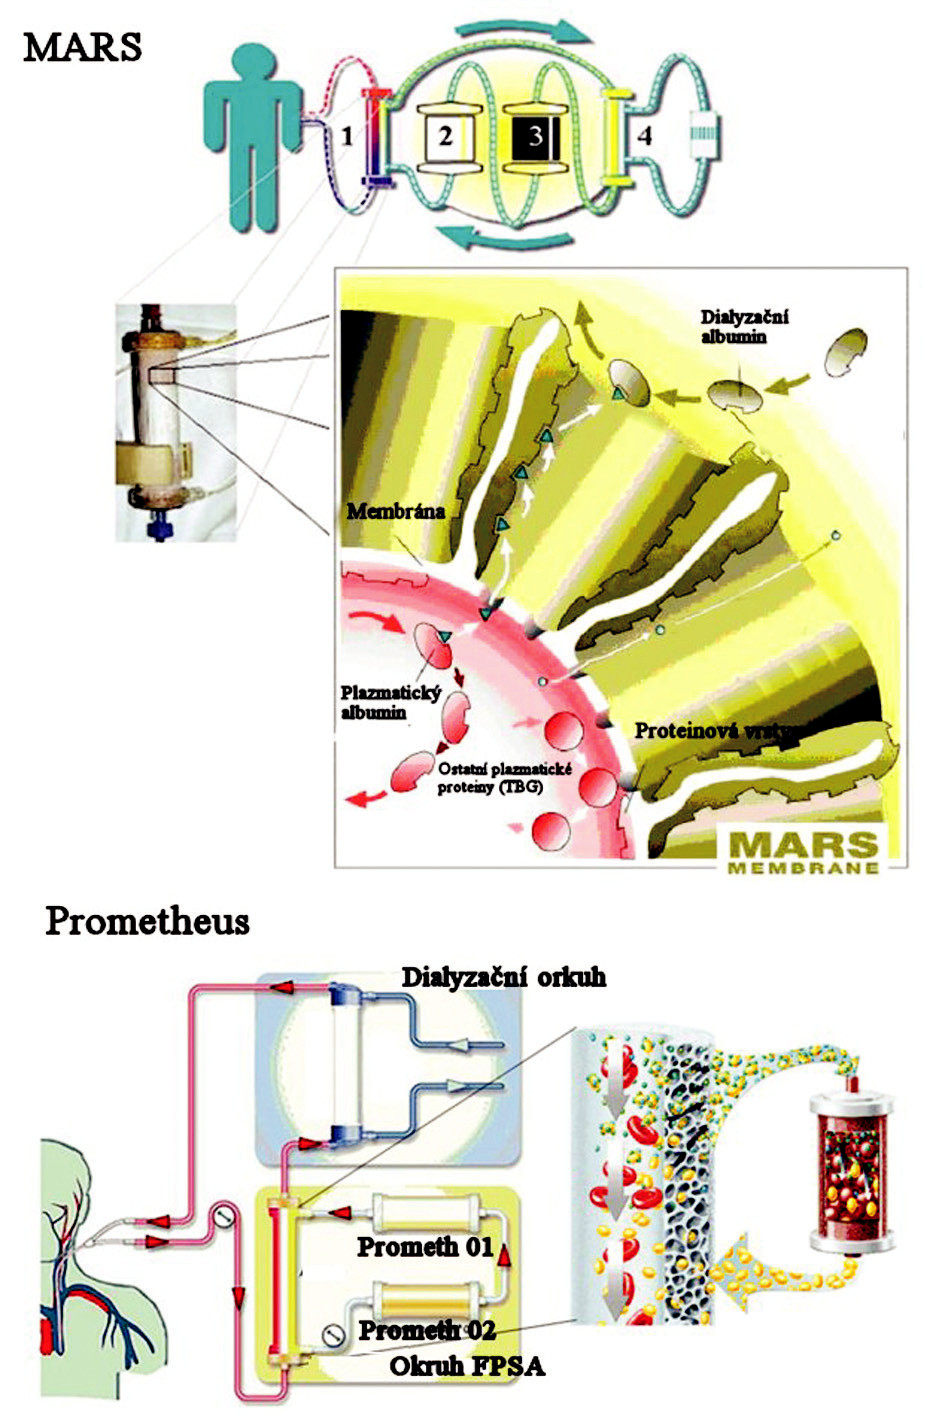 Schematické znázornění principu eliminace v systému MARS® a Prometheus® (převzato z informačního letáku).